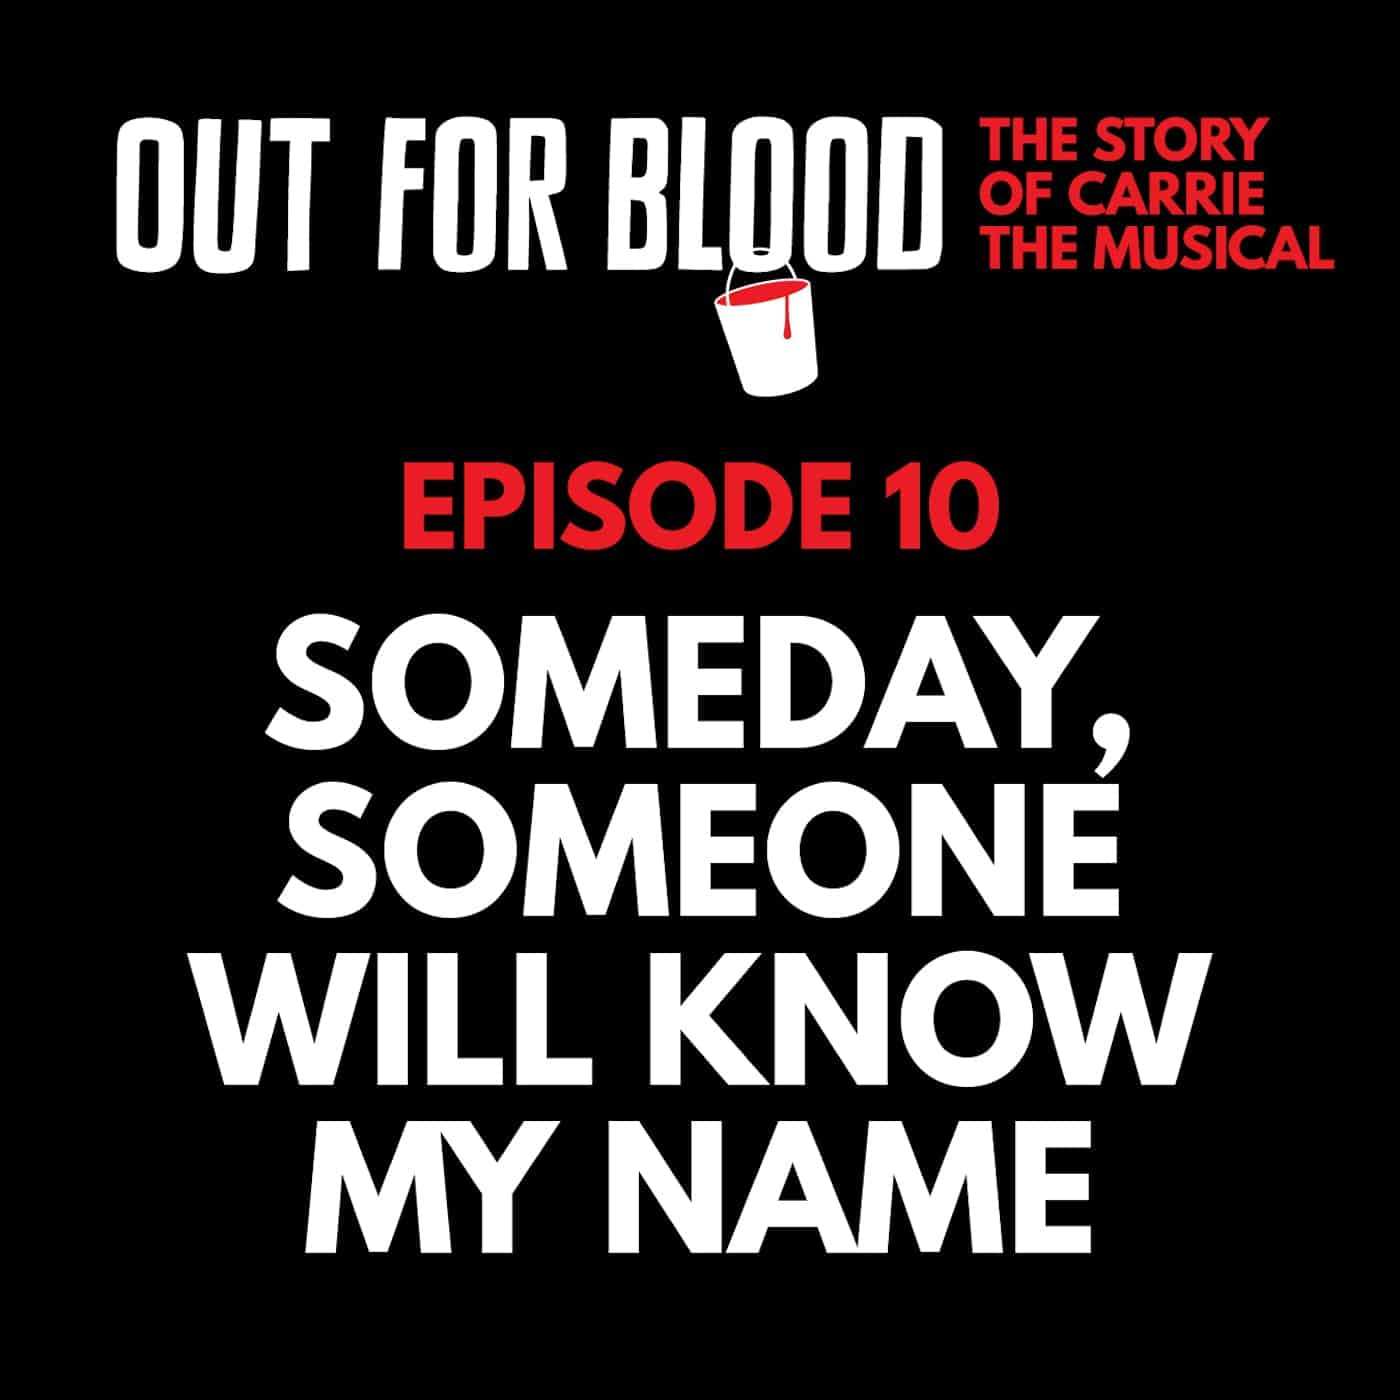 Chapter 10: Someday, someone will know my name